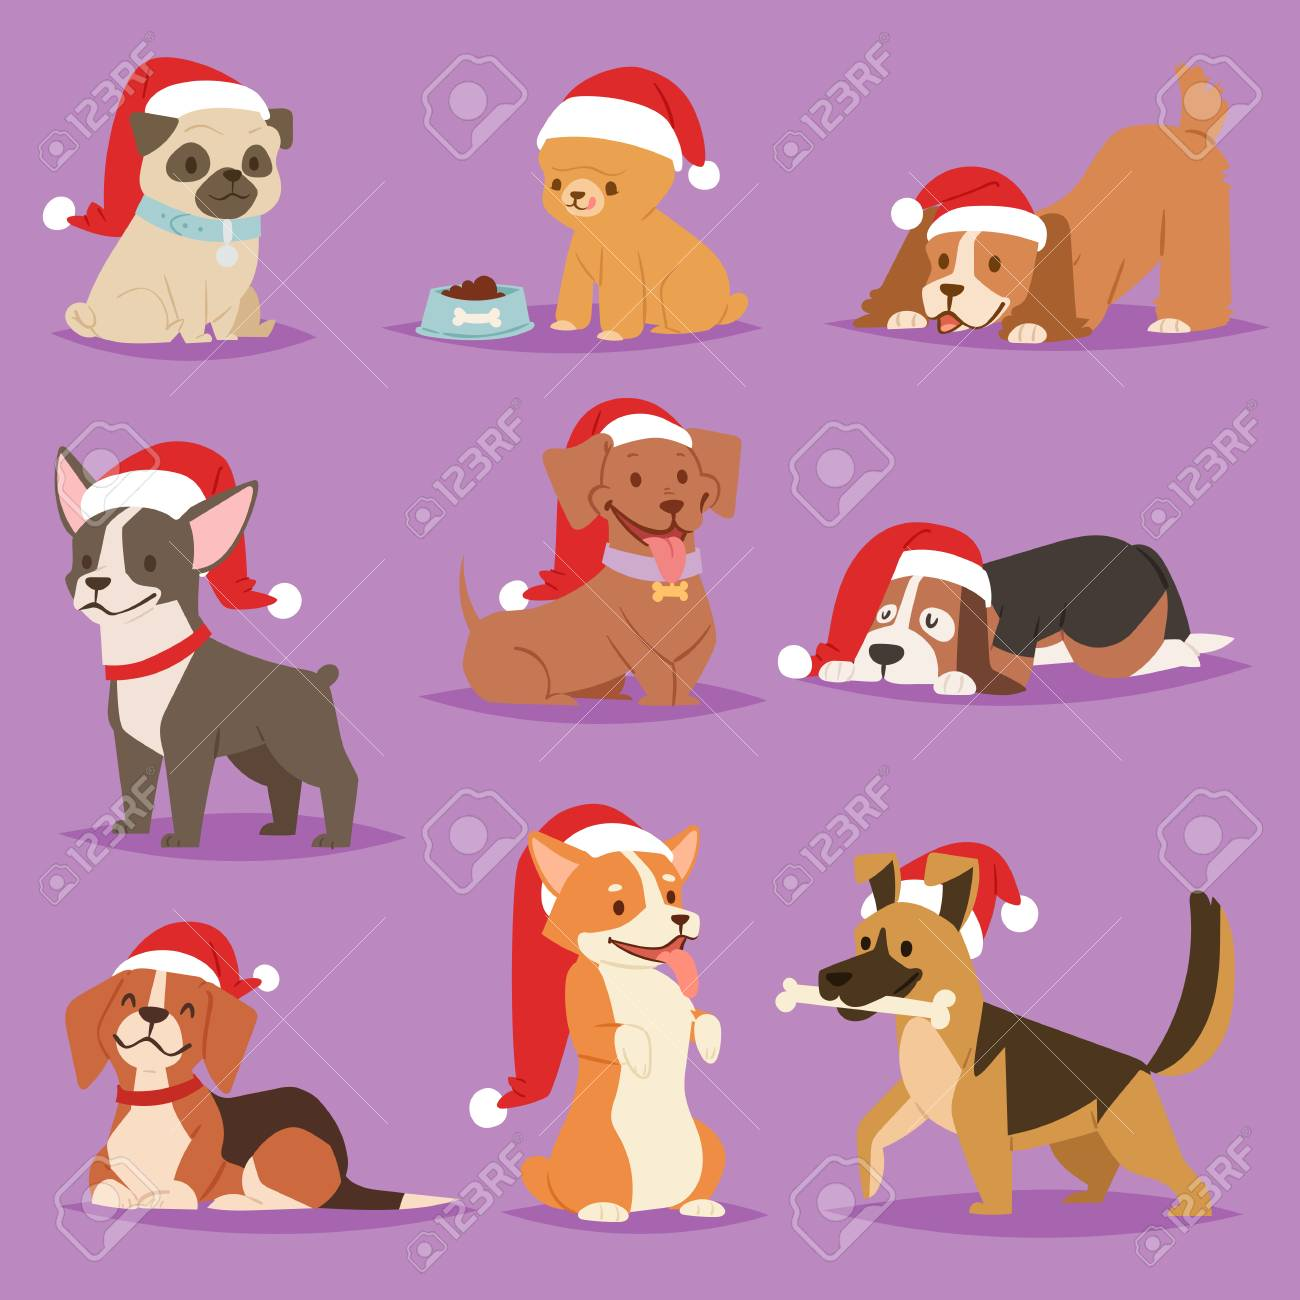 Christmas Dog Vector Cute Cartoon Puppy Characters Illustration Royalty Free Cliparts Vectors And Stock Illustration Image 89823903